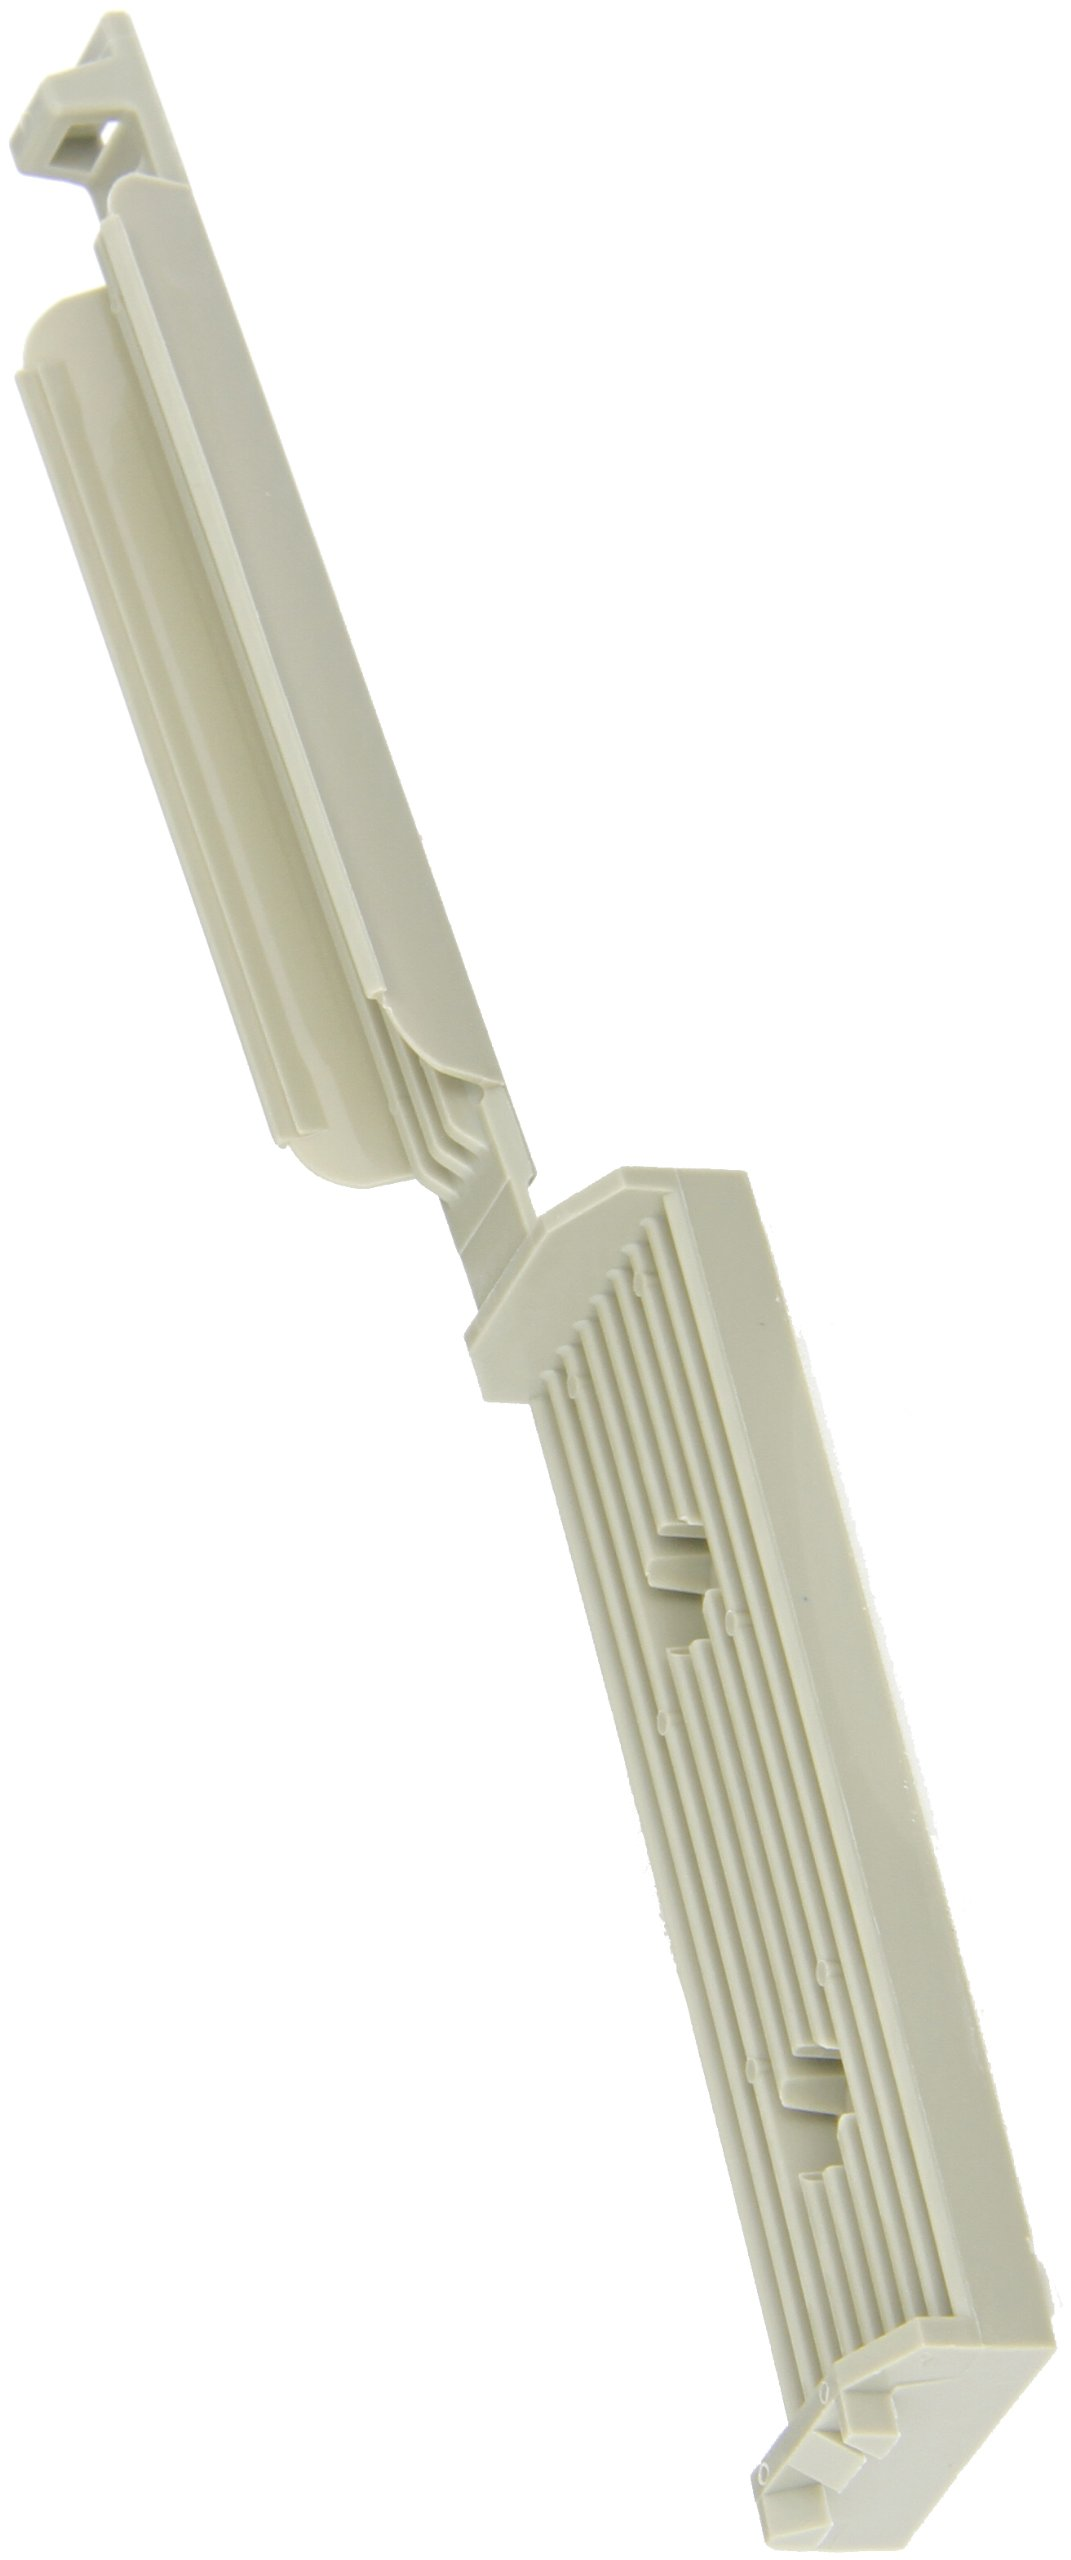 Panduit FCM3.25-A-L14 Latching Flat Cable Mount, Adhesive Backed, Rubber Adhesive Mounting Method, Gray, 1.50'' Hole Spacing, 3.38'' Cable Width, 3.38'' Width, 7.30'' Length (Pack of 50)